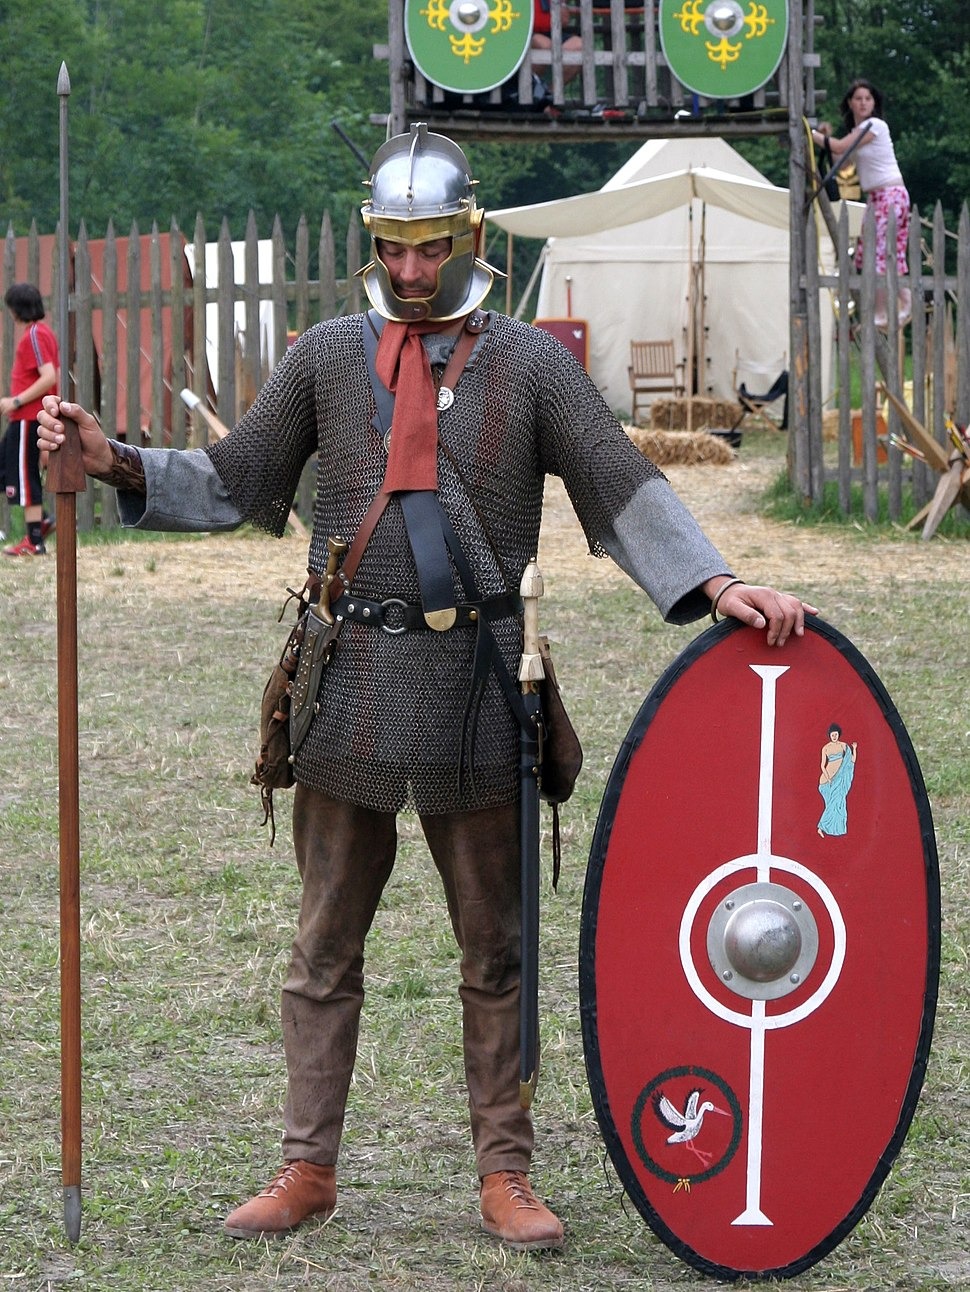 Roman soldier 175 aC in northern province